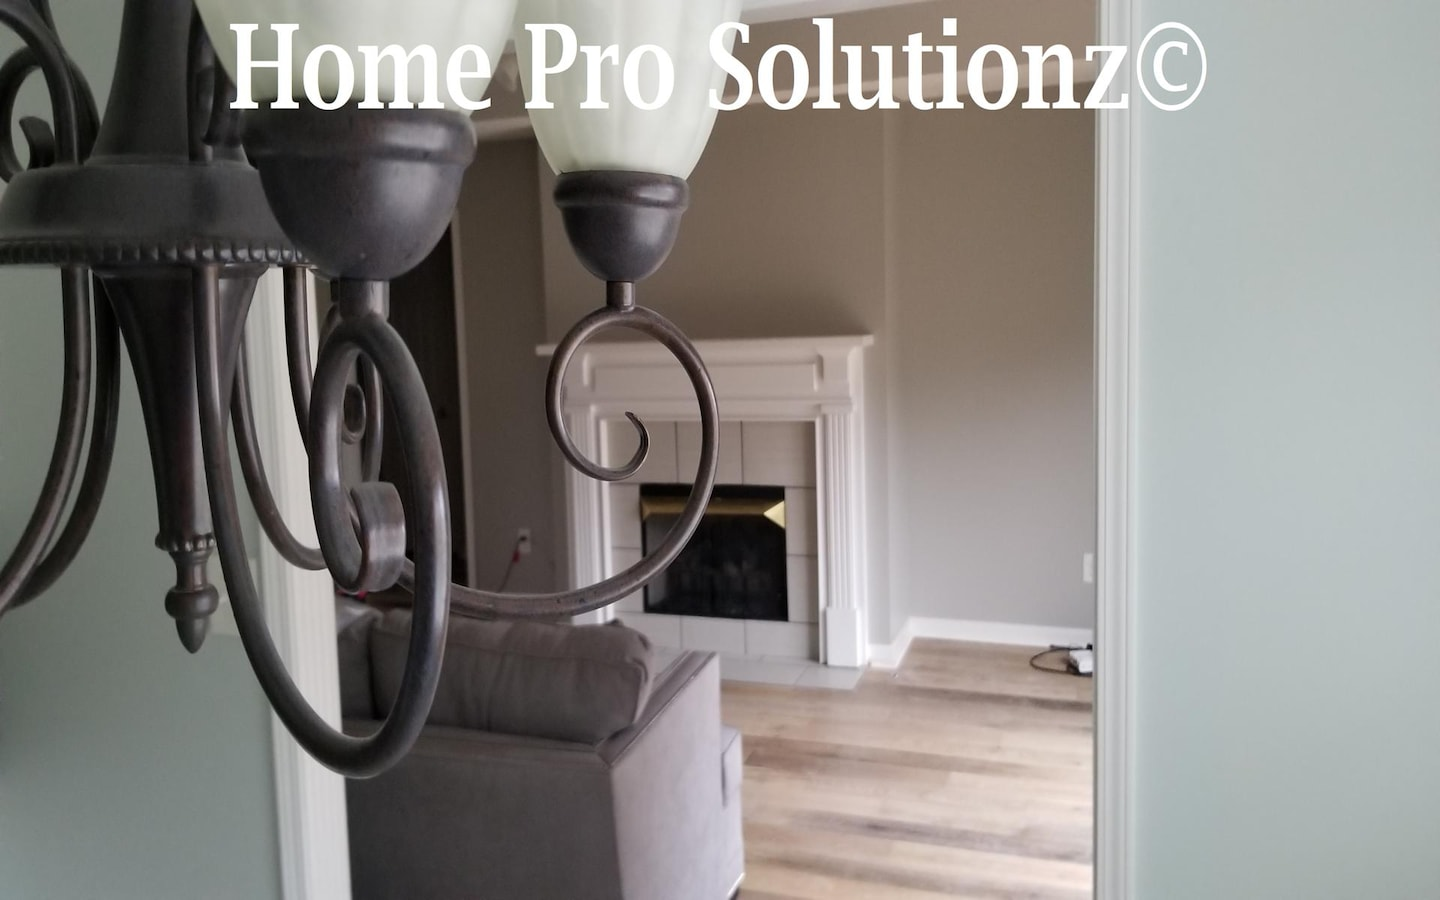 Home Pro Solutionz